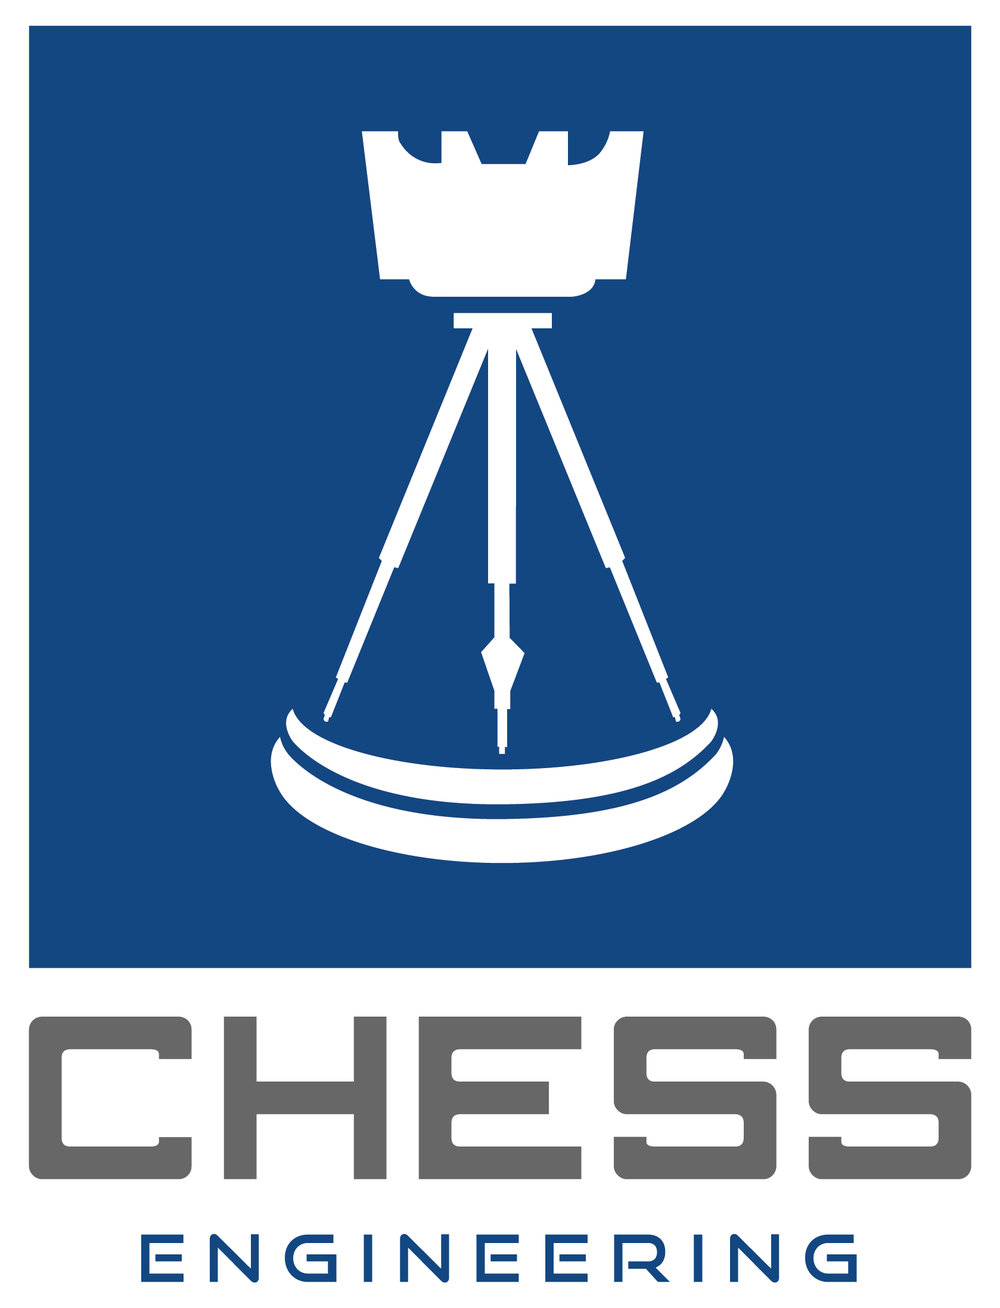 chess_engineering_logo-01.jpg